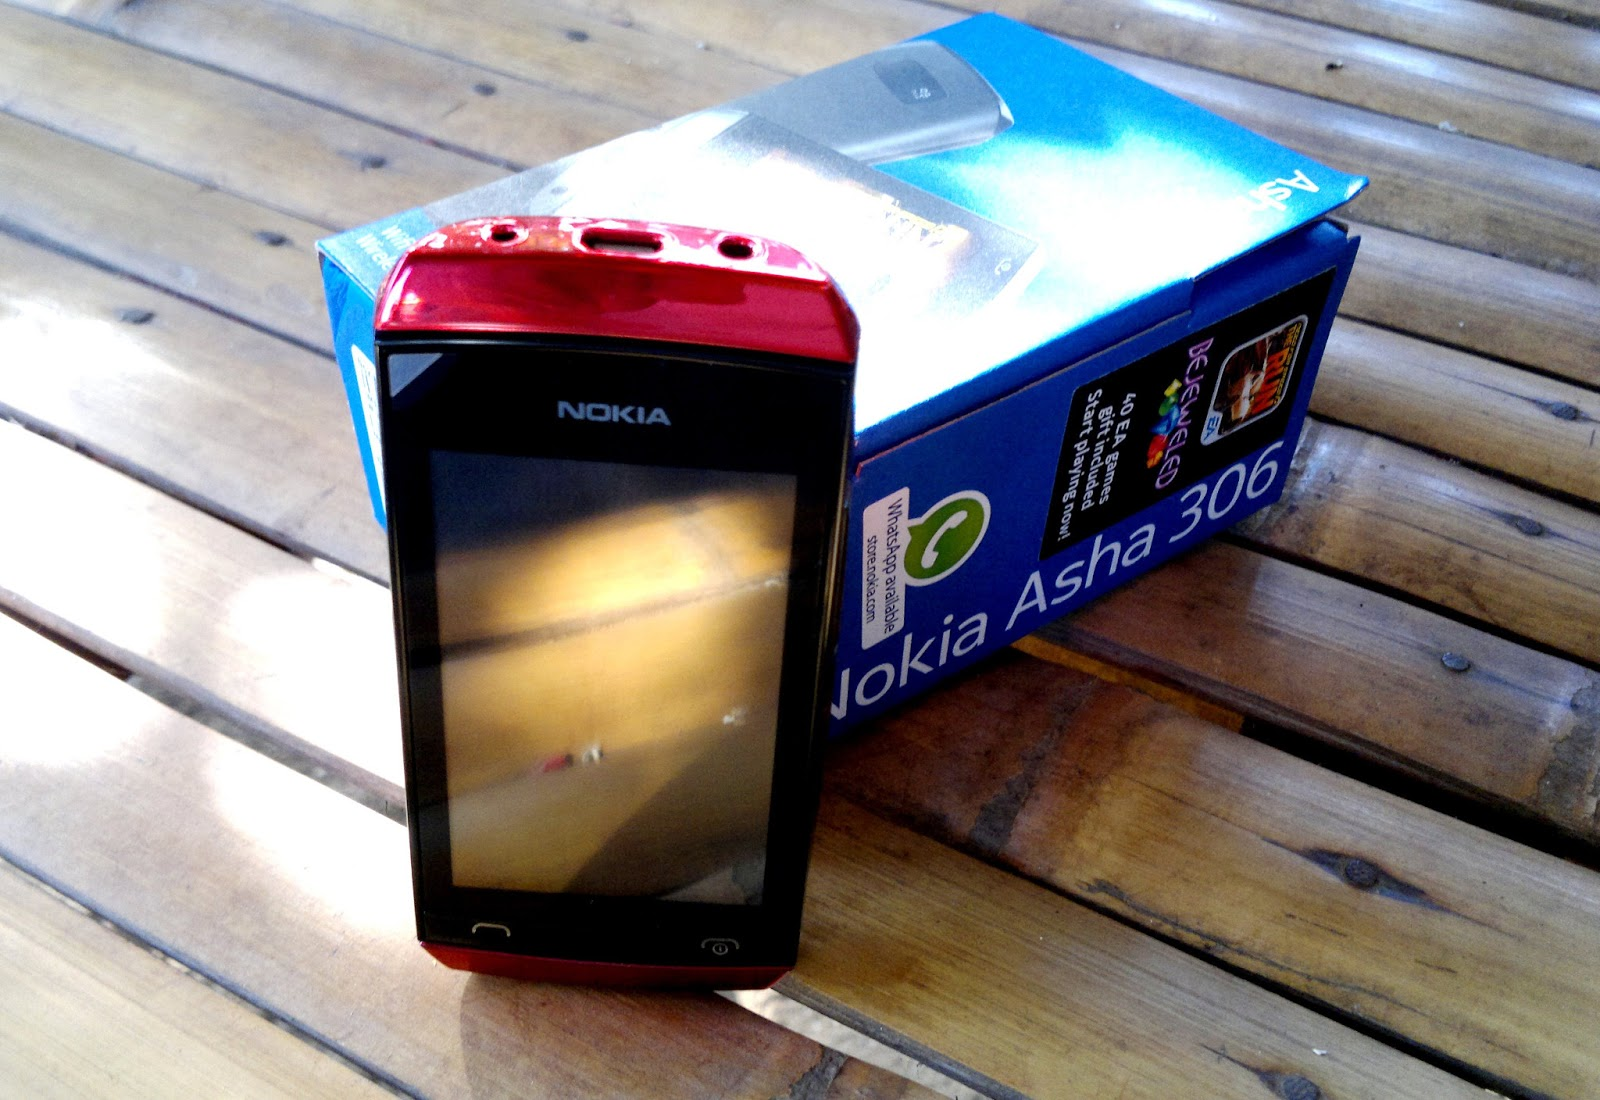 Nokia Asha 306 Hardware Smallish And Compact Scratch E Pad 603 2gb Black The Is No Different It Carries With Excellent Best Fitted For Its Price